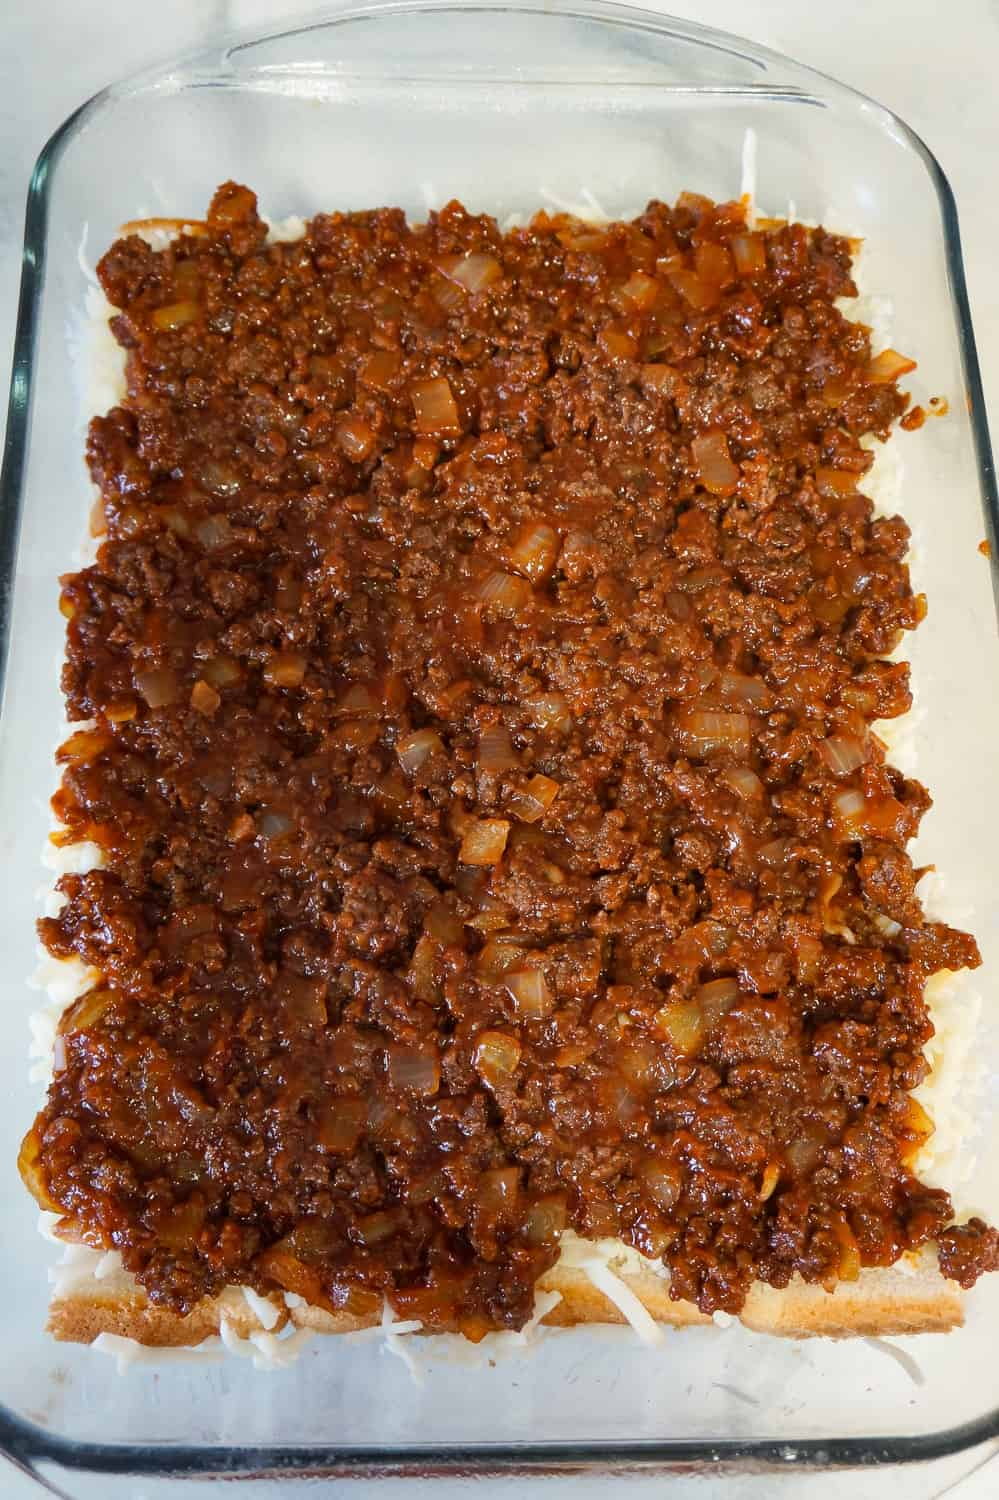 sloppy joe mixture spread over bread in a baking dish